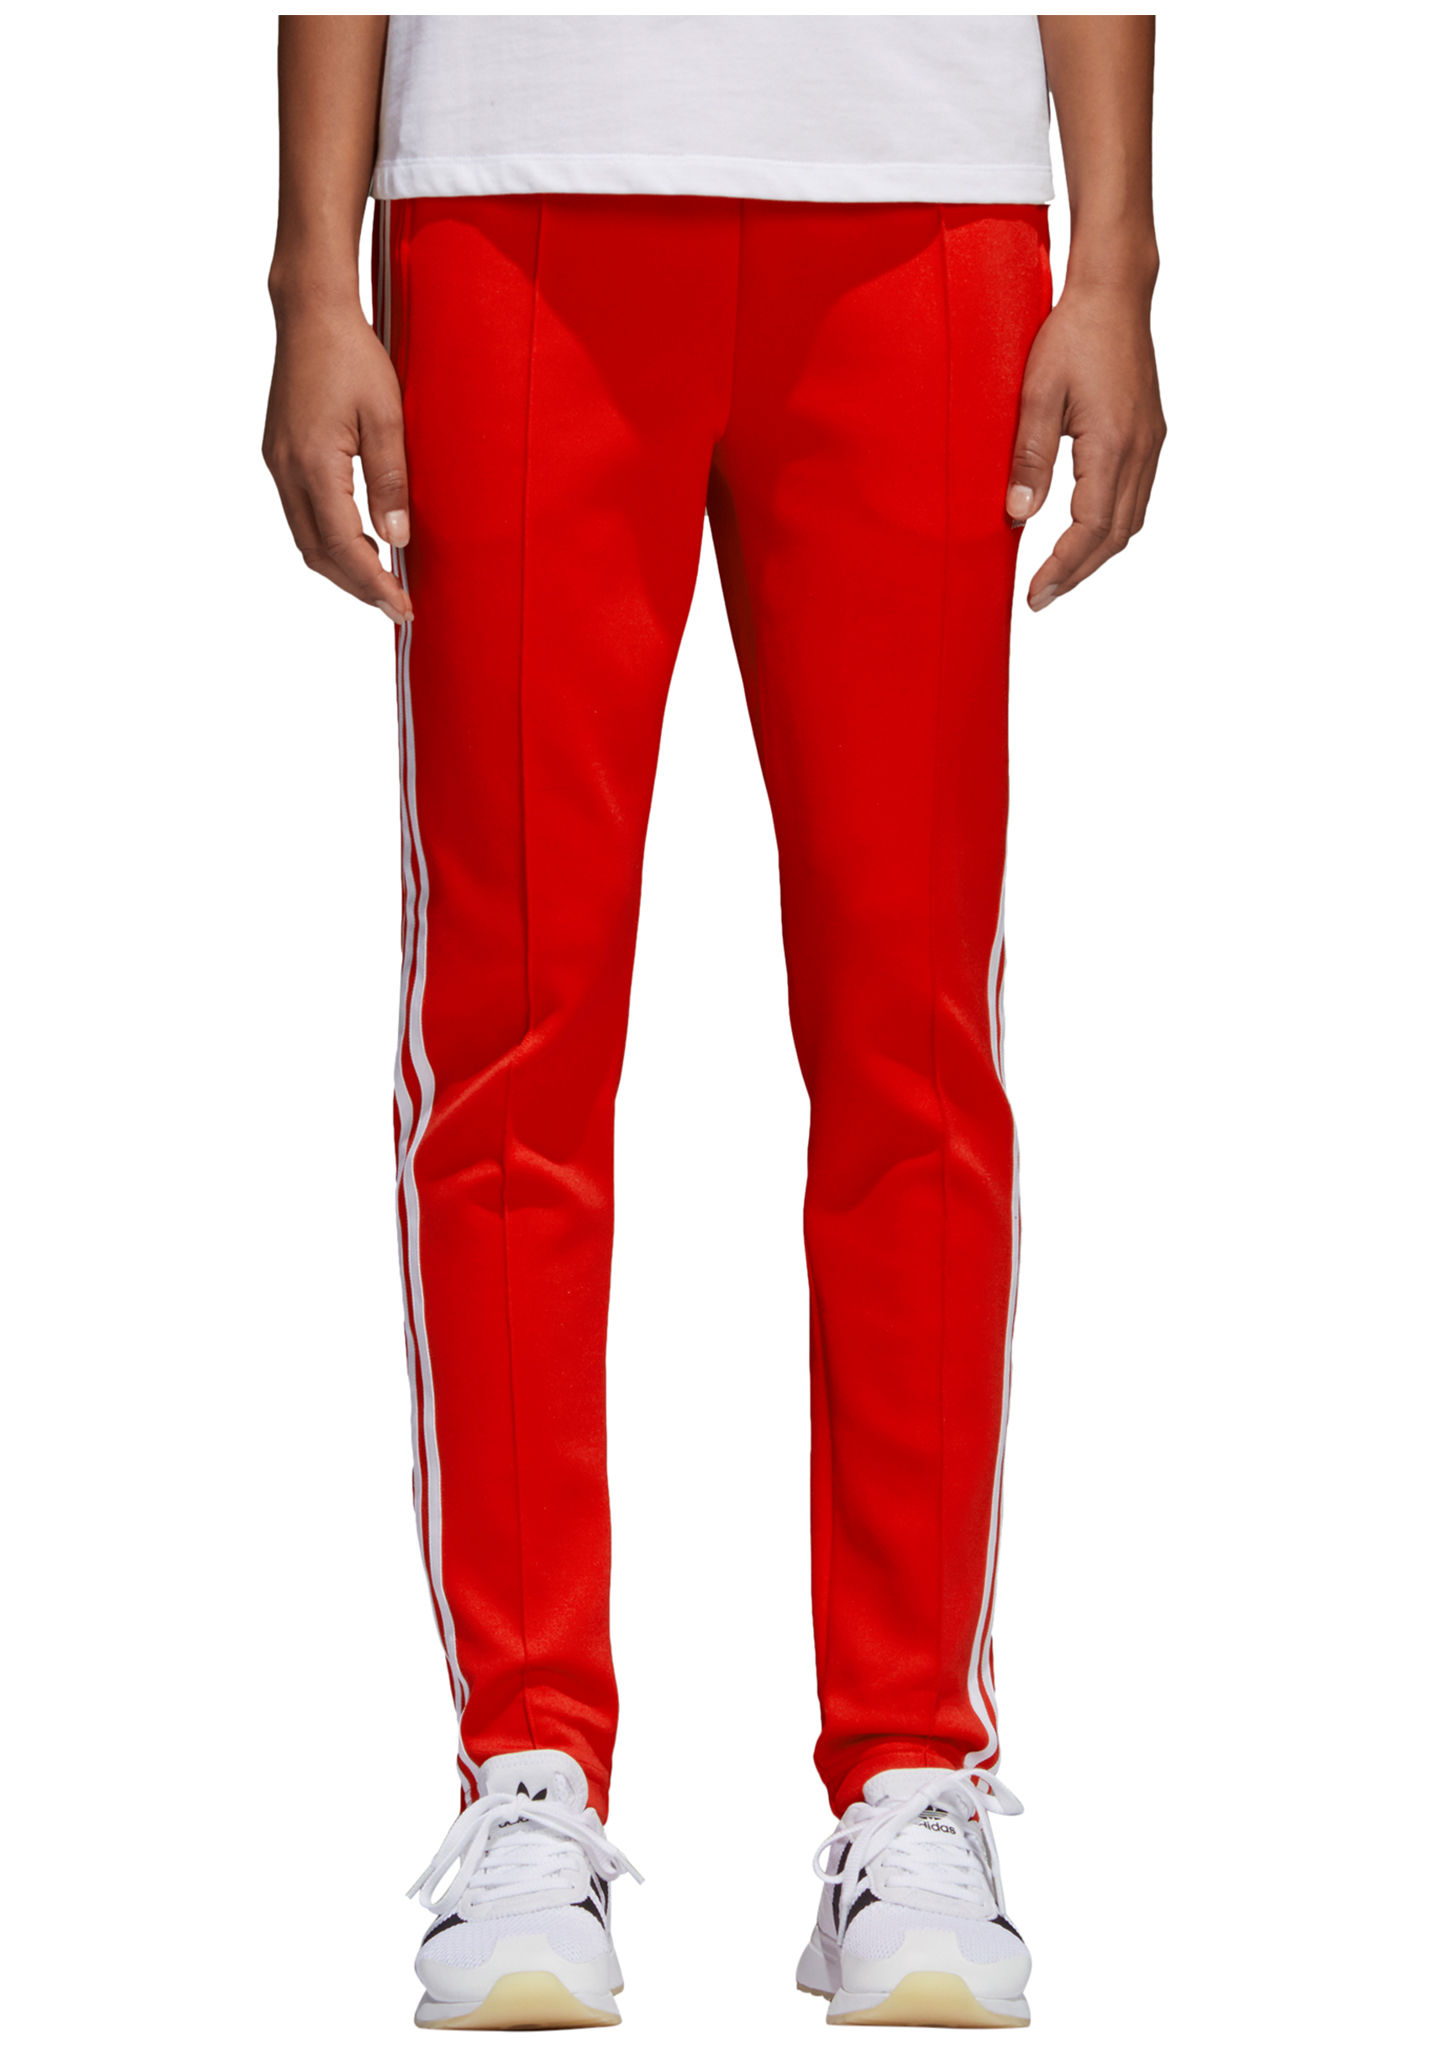 ADIDAS ORIGINALS Sst - Trainingsbroek voor Dames - Rood